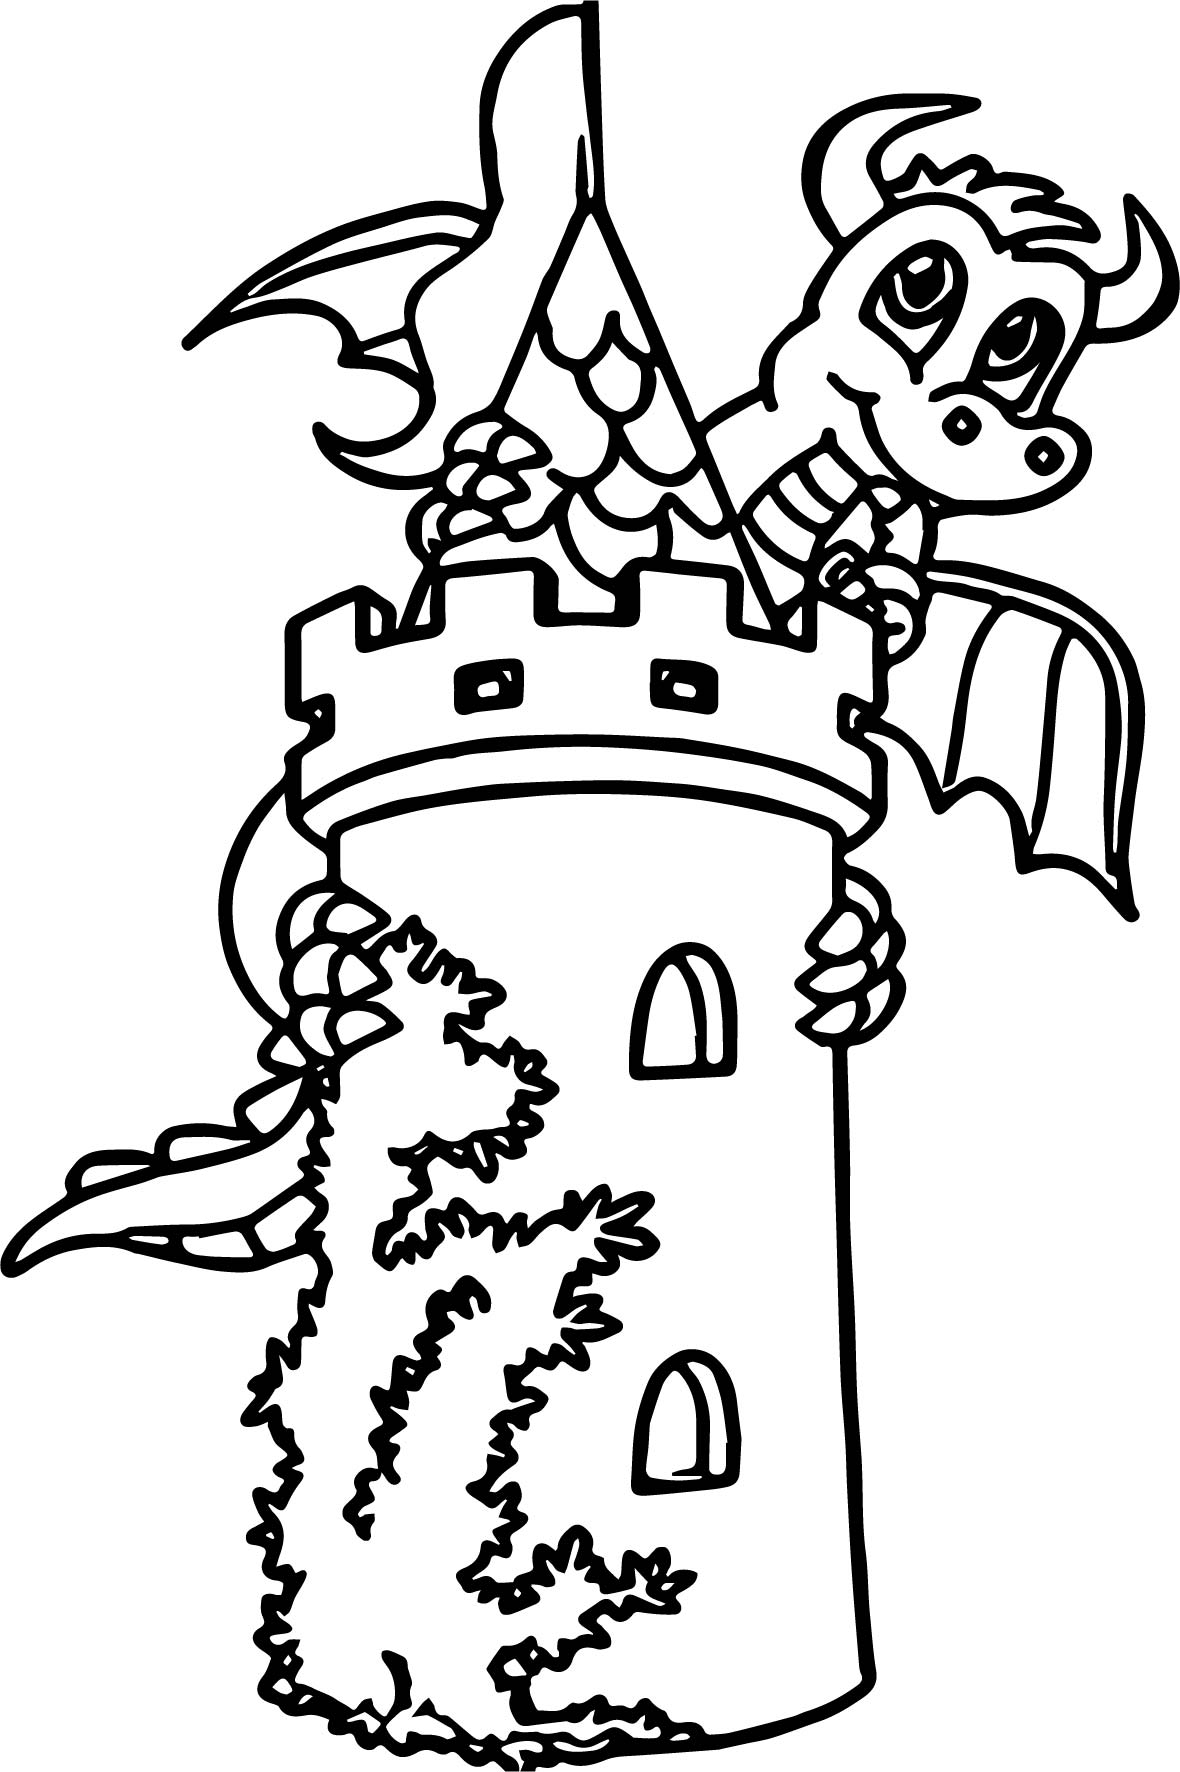 The Dragon Around Tower Coloring Page